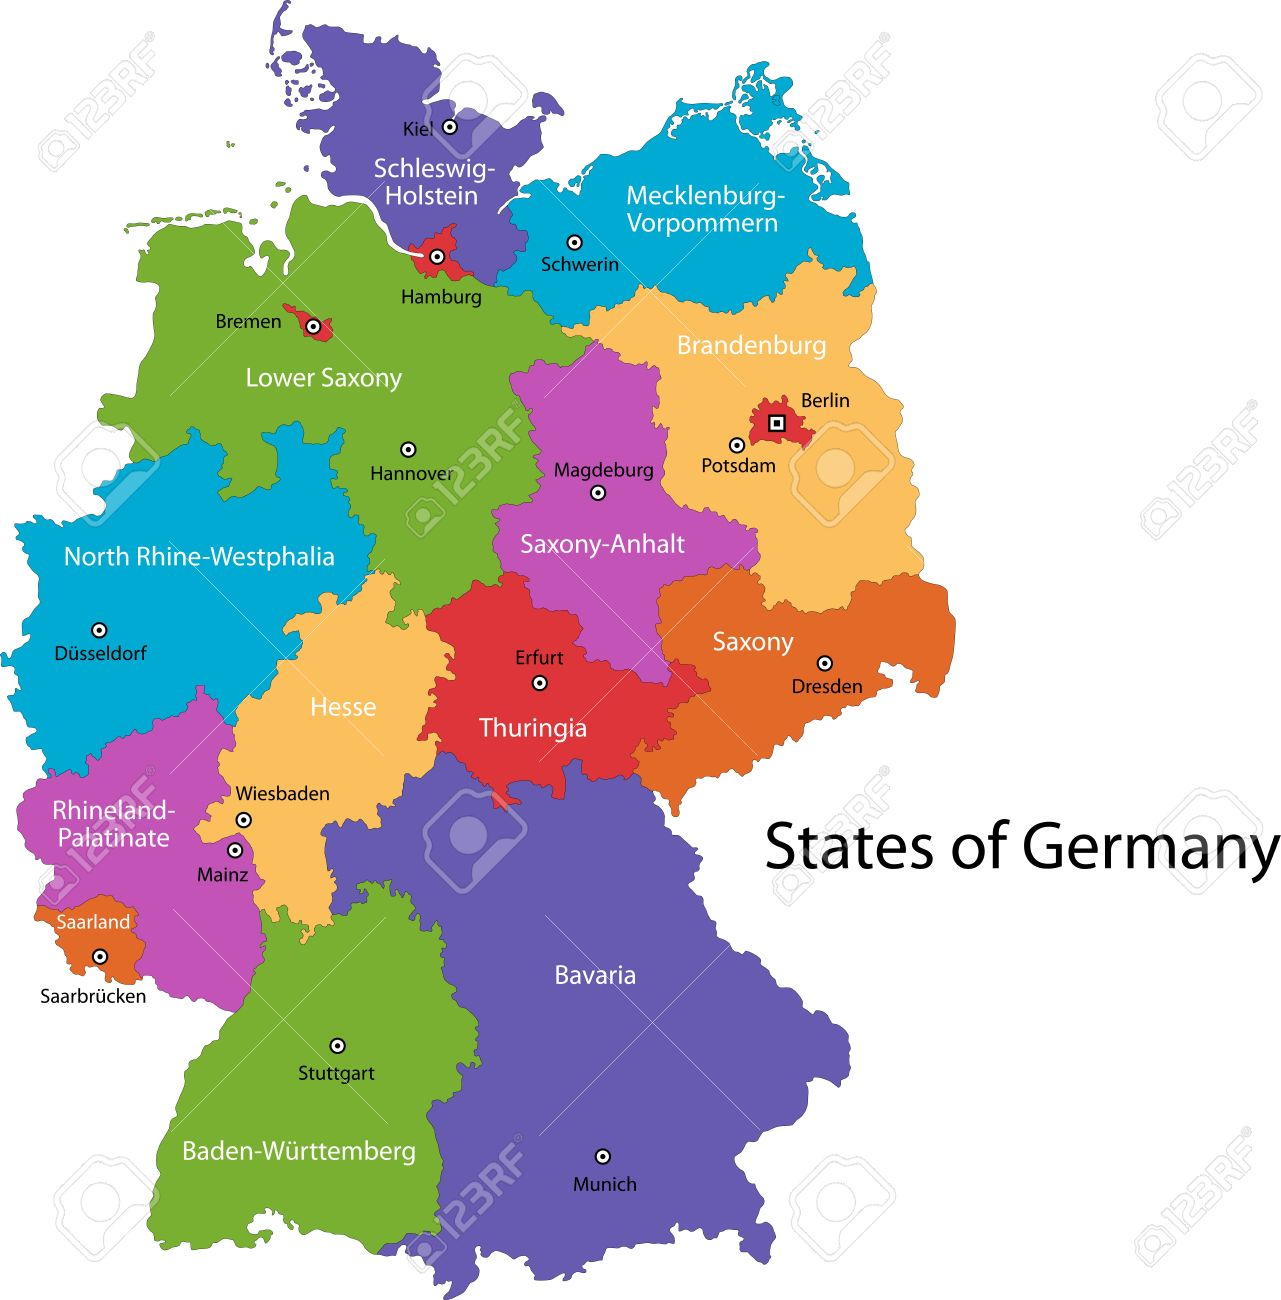 Colorful Germany map with regions and main cities - 21813621